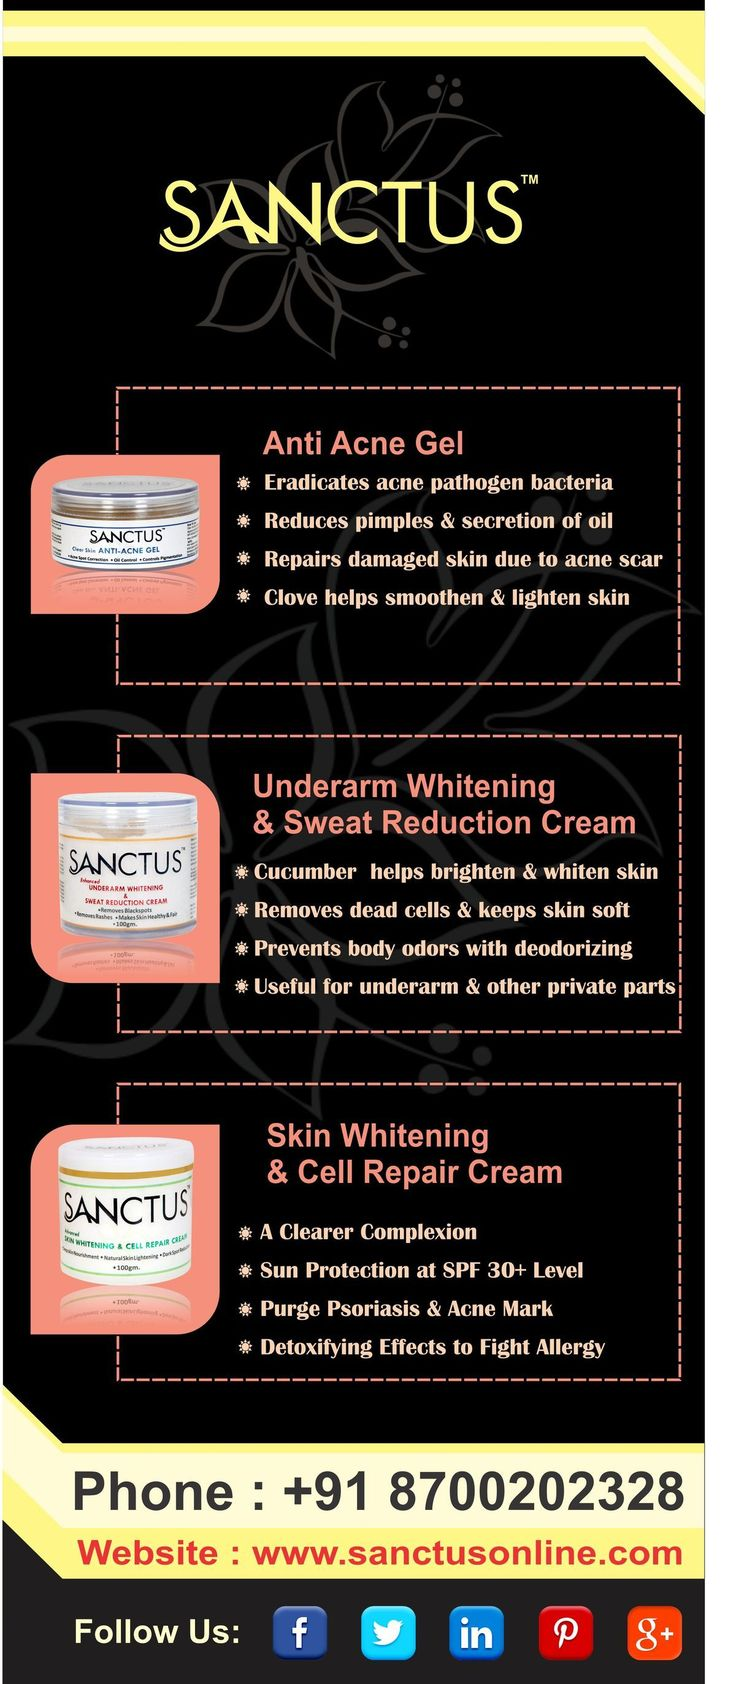 Lets Reduce Acne, Dark Spots & Keeps Skin Radiant & Brighten  Sanctus is renowned anti acne cream manufacturers in kerala and offers best beauty products i.e. Anti Acne Gel, Underarm Whitening Cream and Skin Whitening Cream.  Visit https://www.sanctusonline.com/ to buy our products online. Your skin is your largest organ... So proper internal functioning is ESSENTIAL, because the build up of toxins and out-of-whack hormones are reflected outwards through your skin in the form of, you guessed…